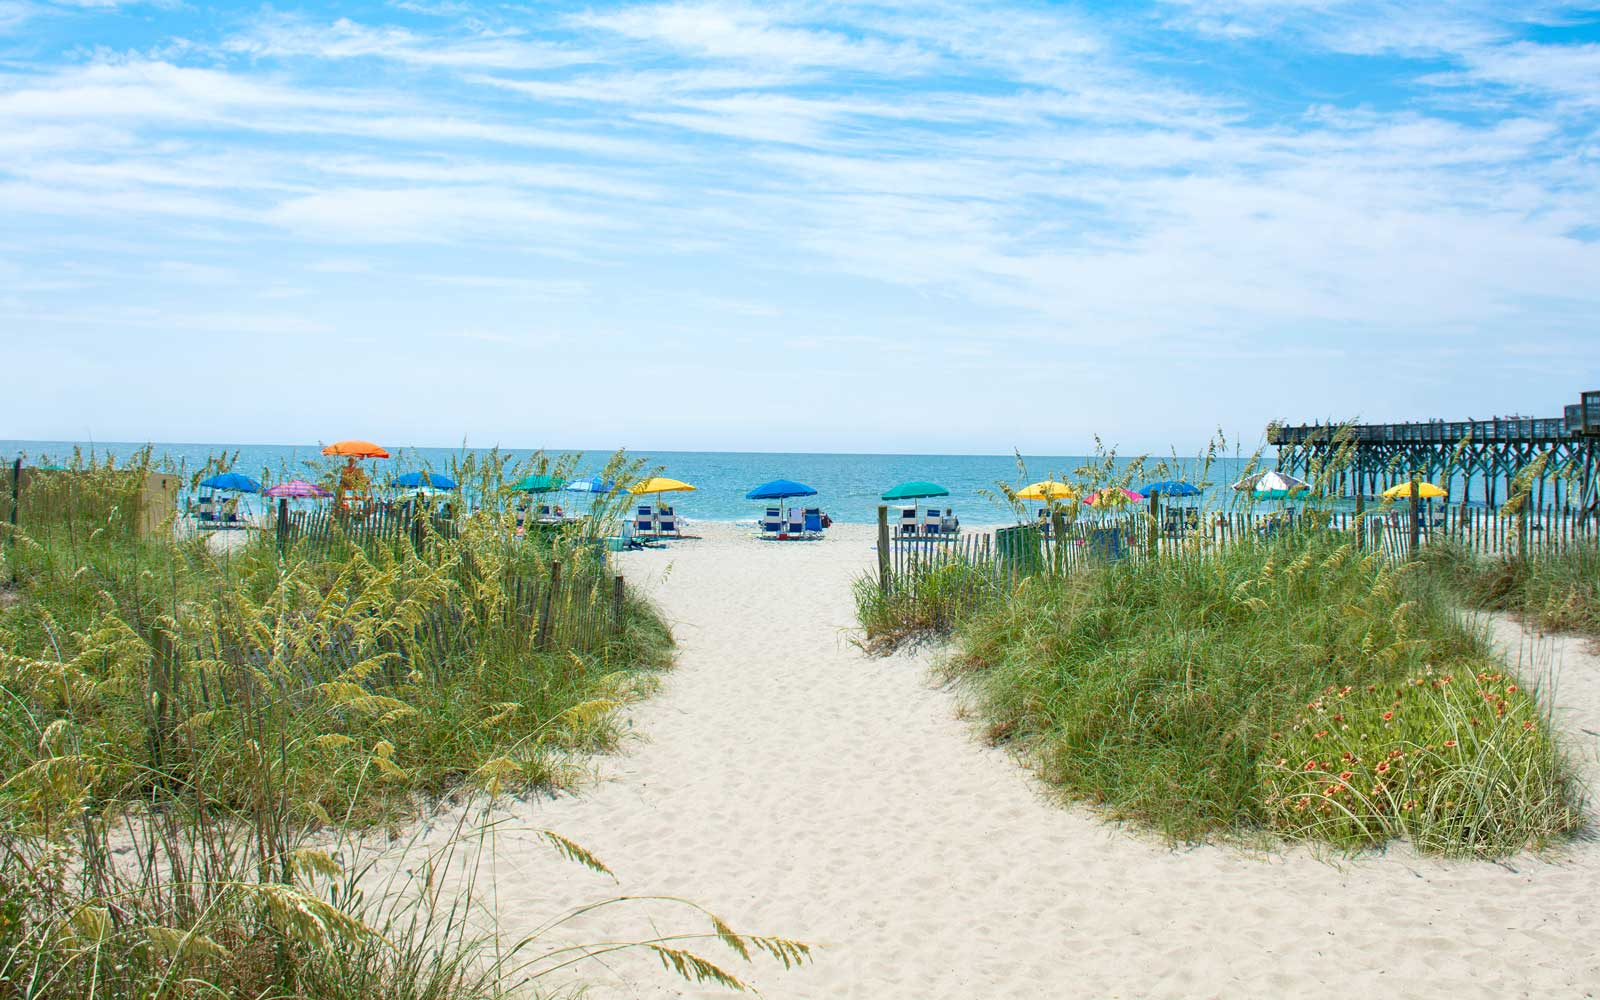 The Top Trending Memorial Day Weekend Destinations for 2019, According to Google